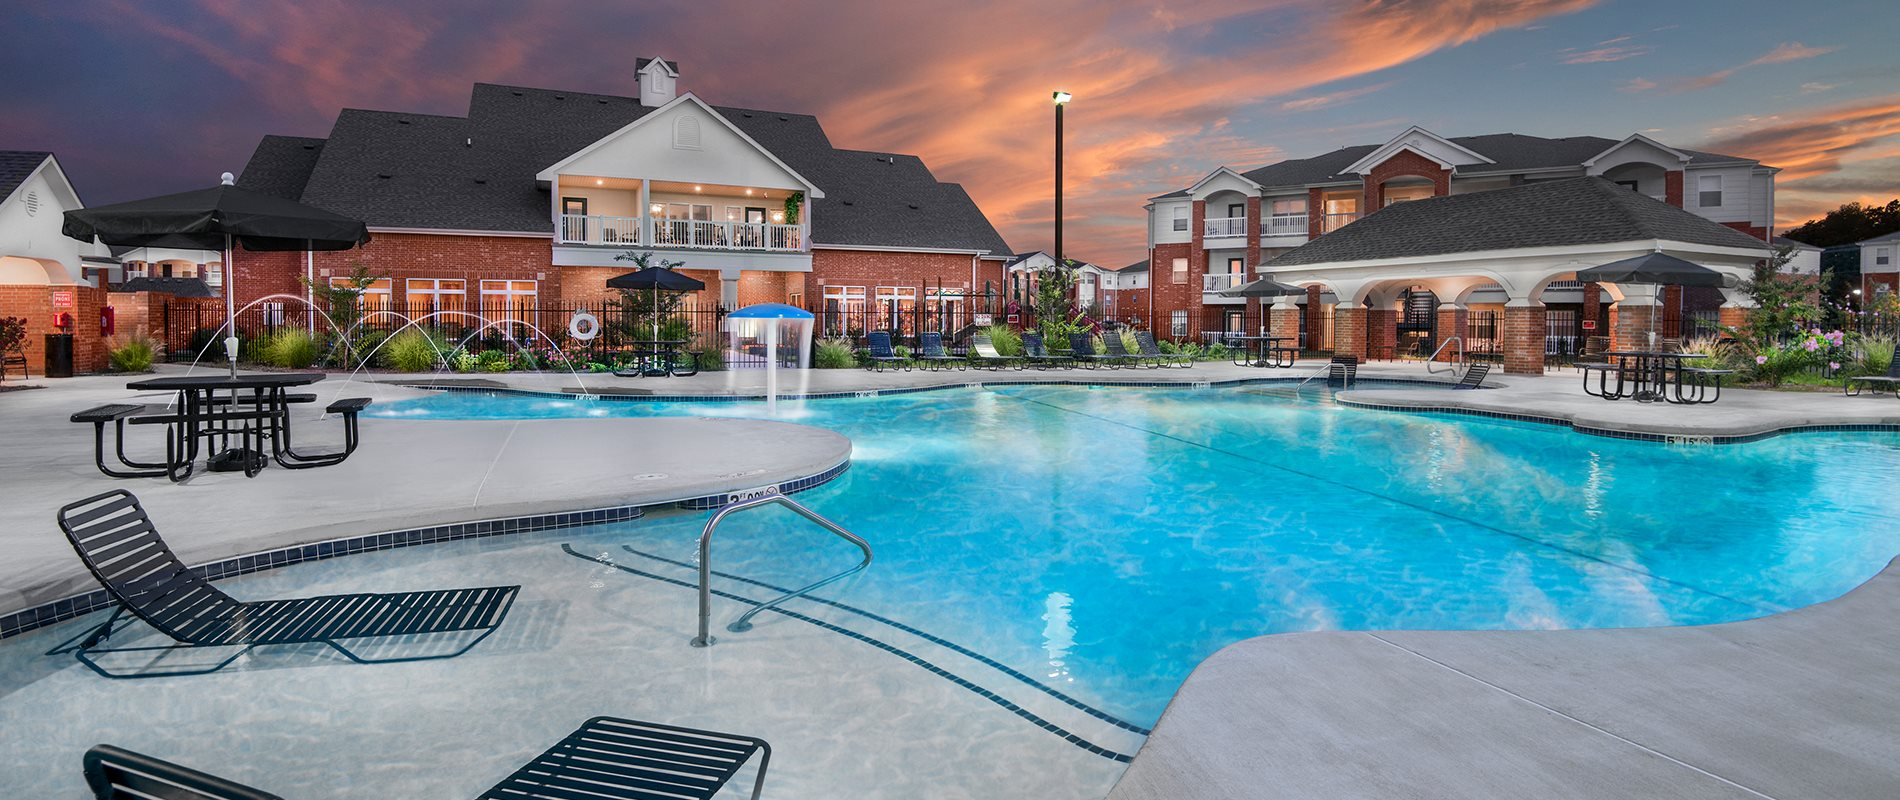 The trails at bentonville apartments in bentonville ar for Bentonville pool